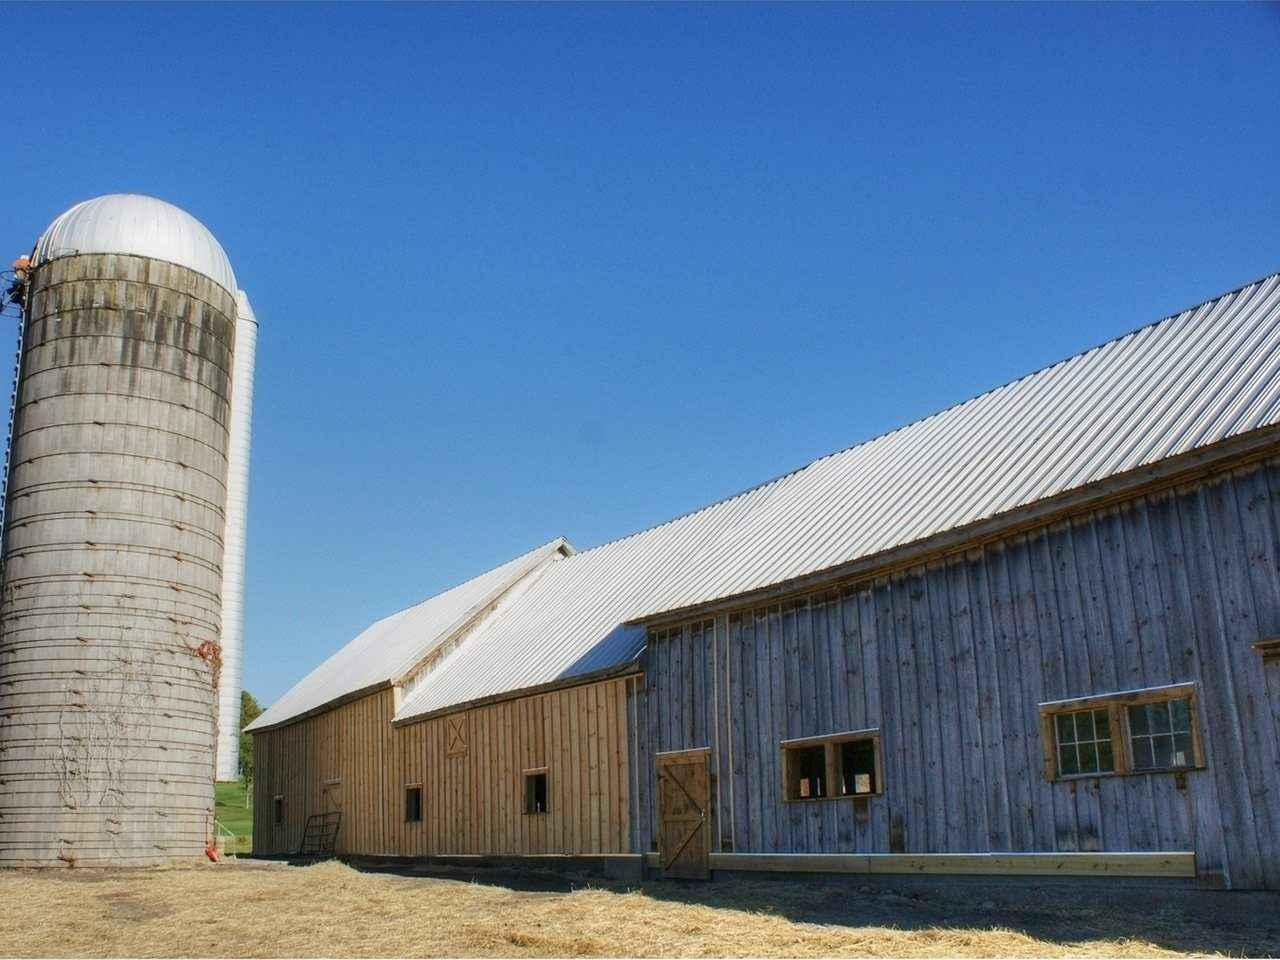 Hay barn w/ new siding 10146216